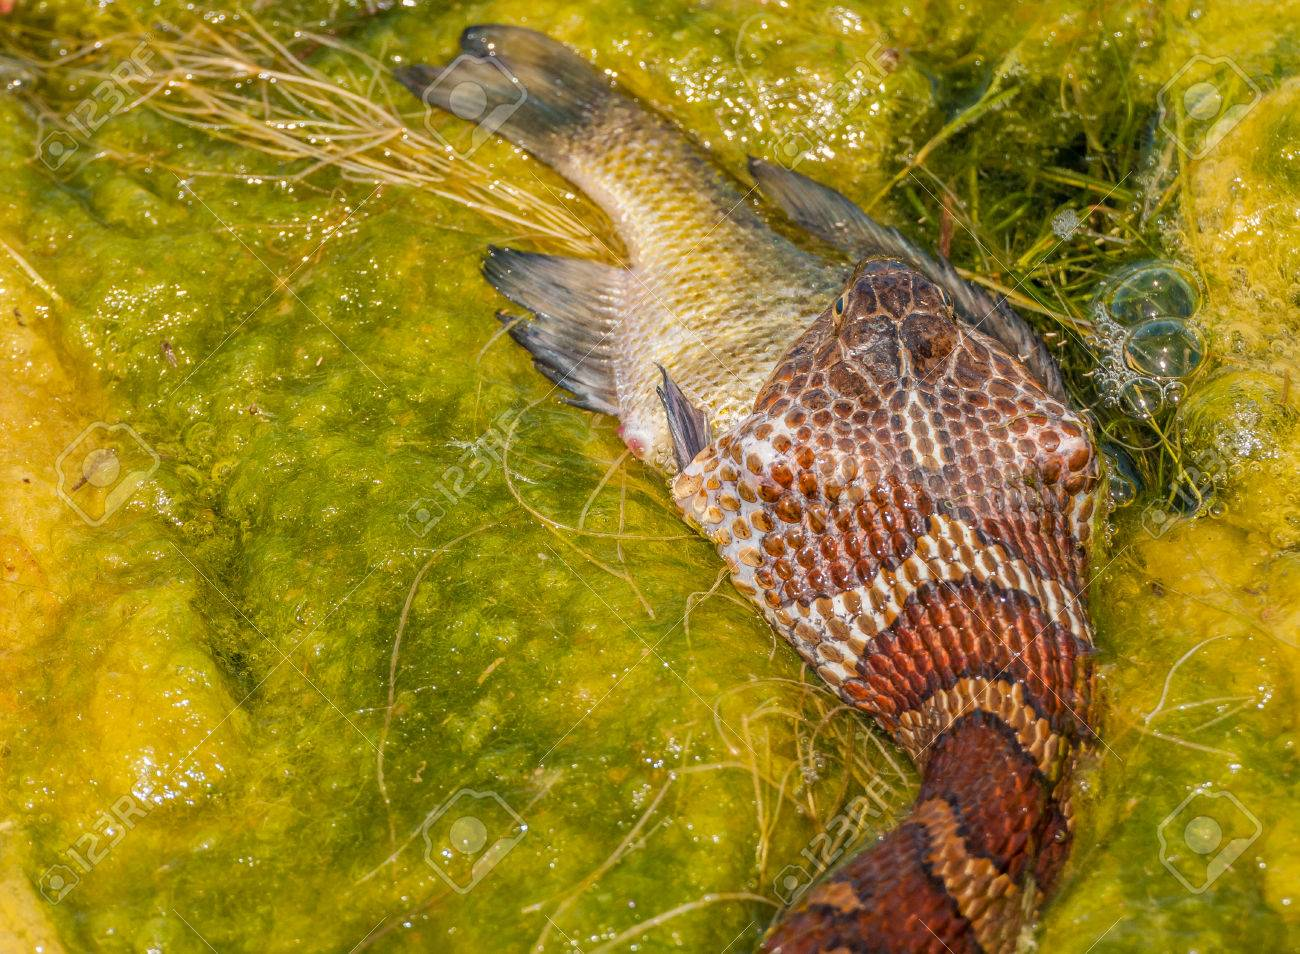 A Water Snake Eating Prey At The Edge Of A Pond Stock Photo